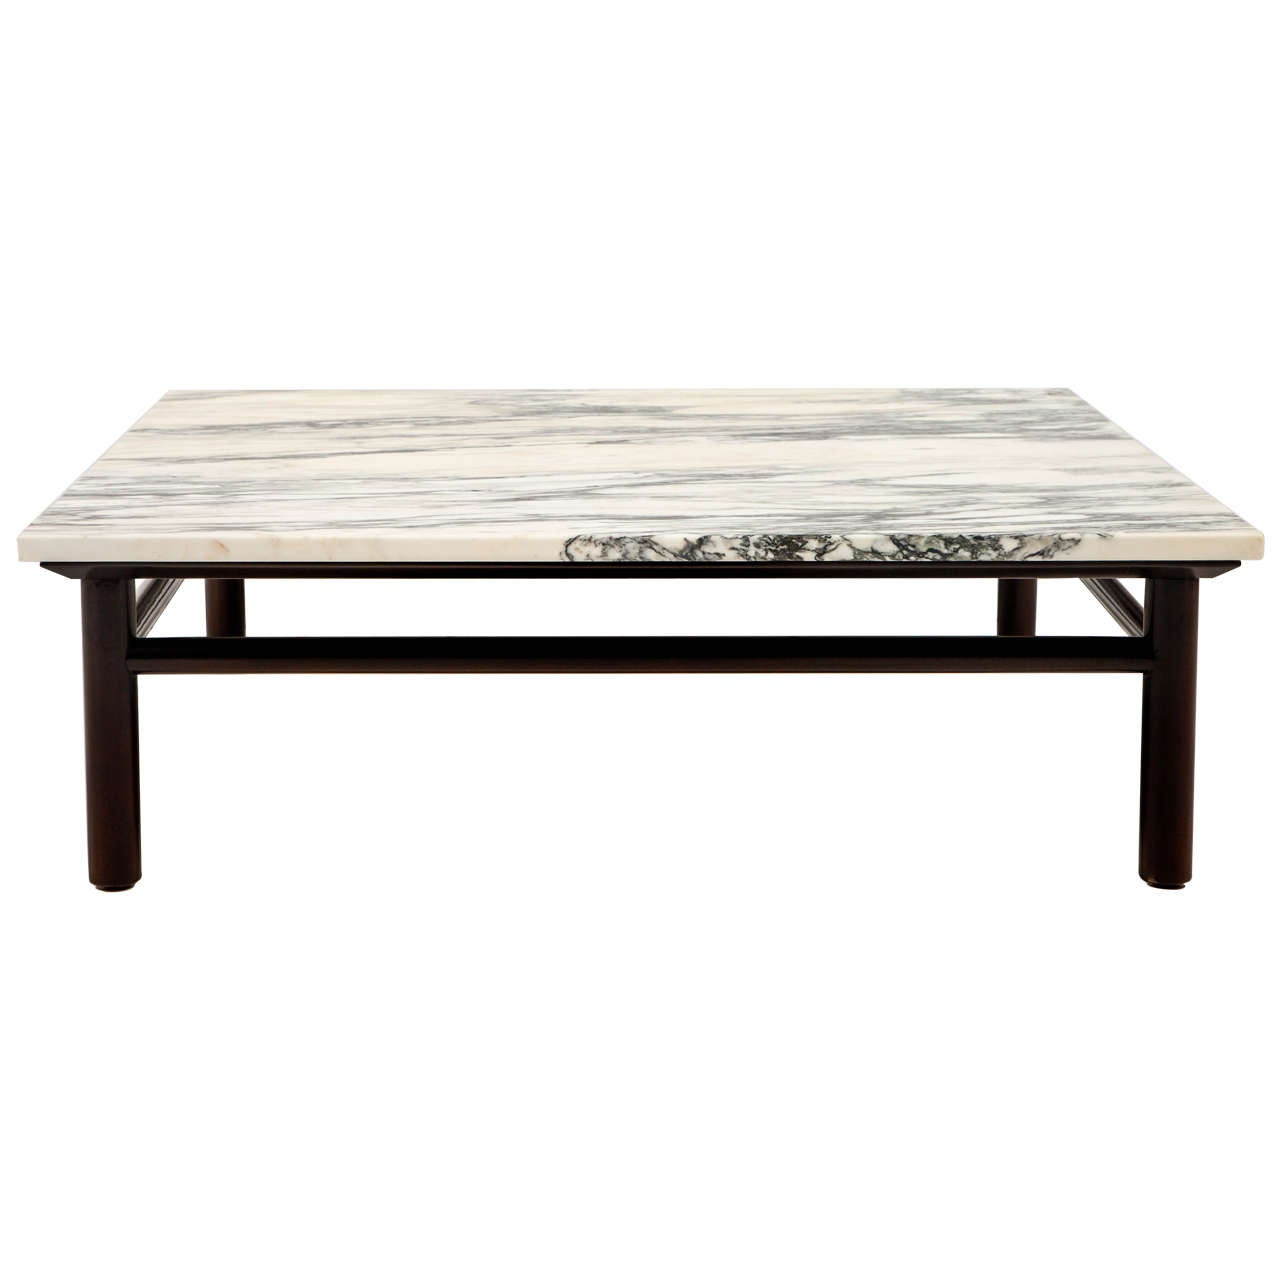 Robsjohn gibbings walnut and marble coffee table for sale for Marble and walnut coffee table